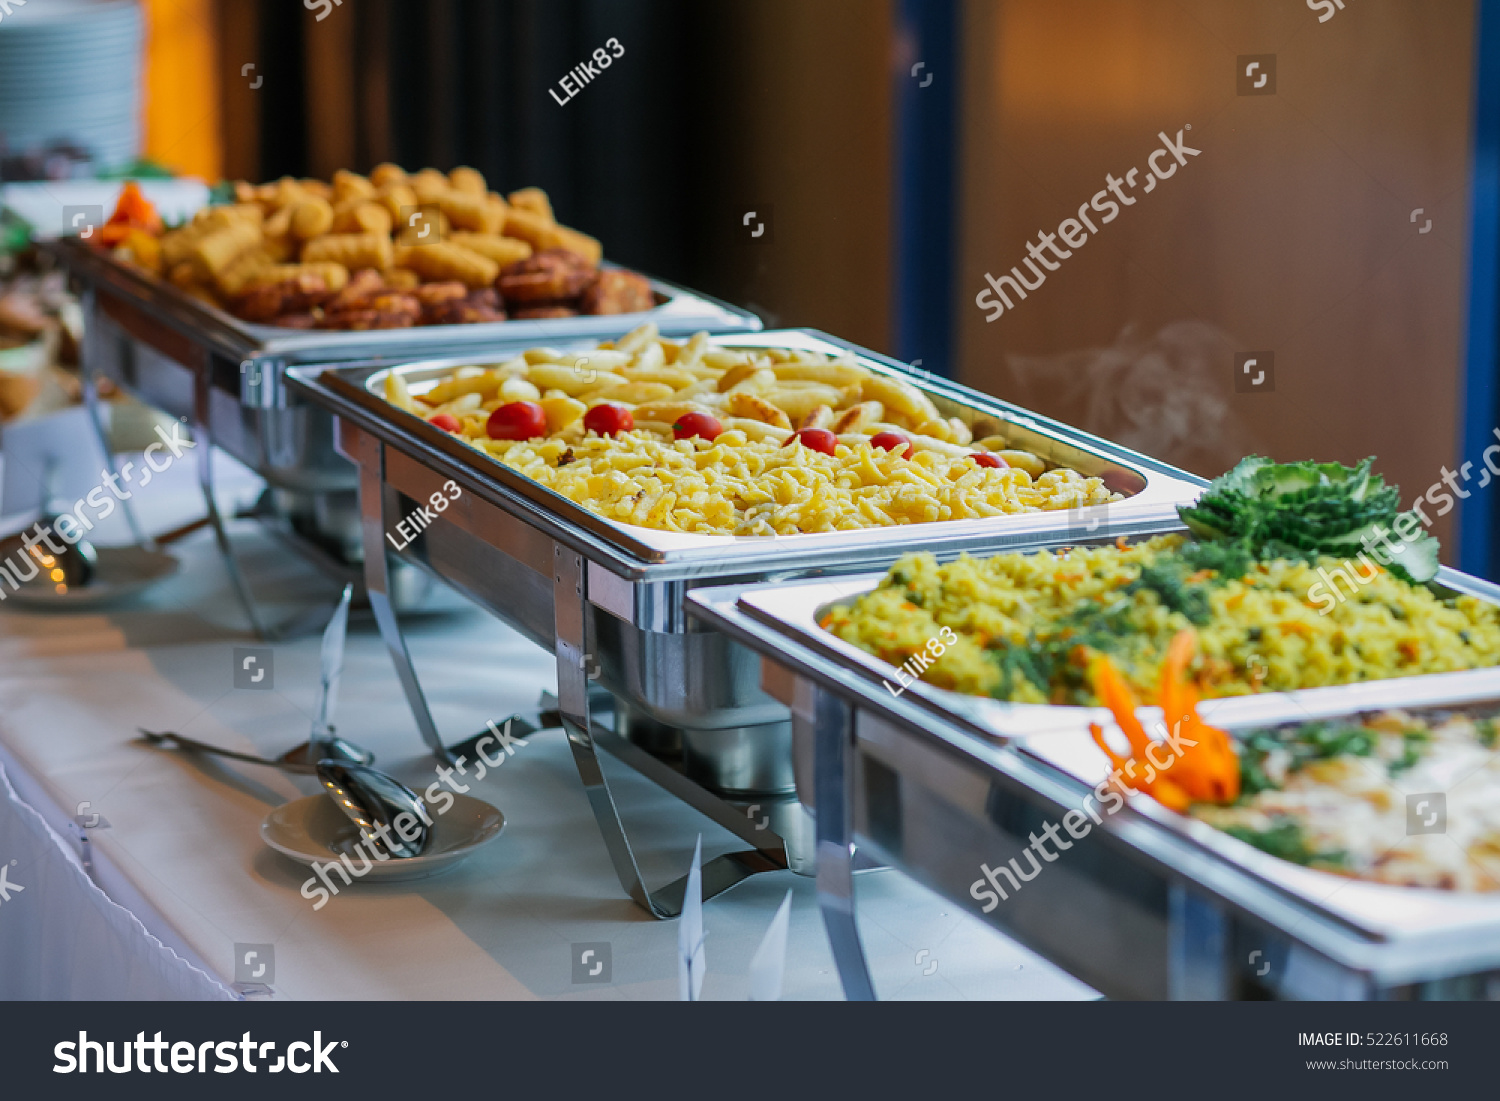 Food Wedding Catering Stock Photo 522611668